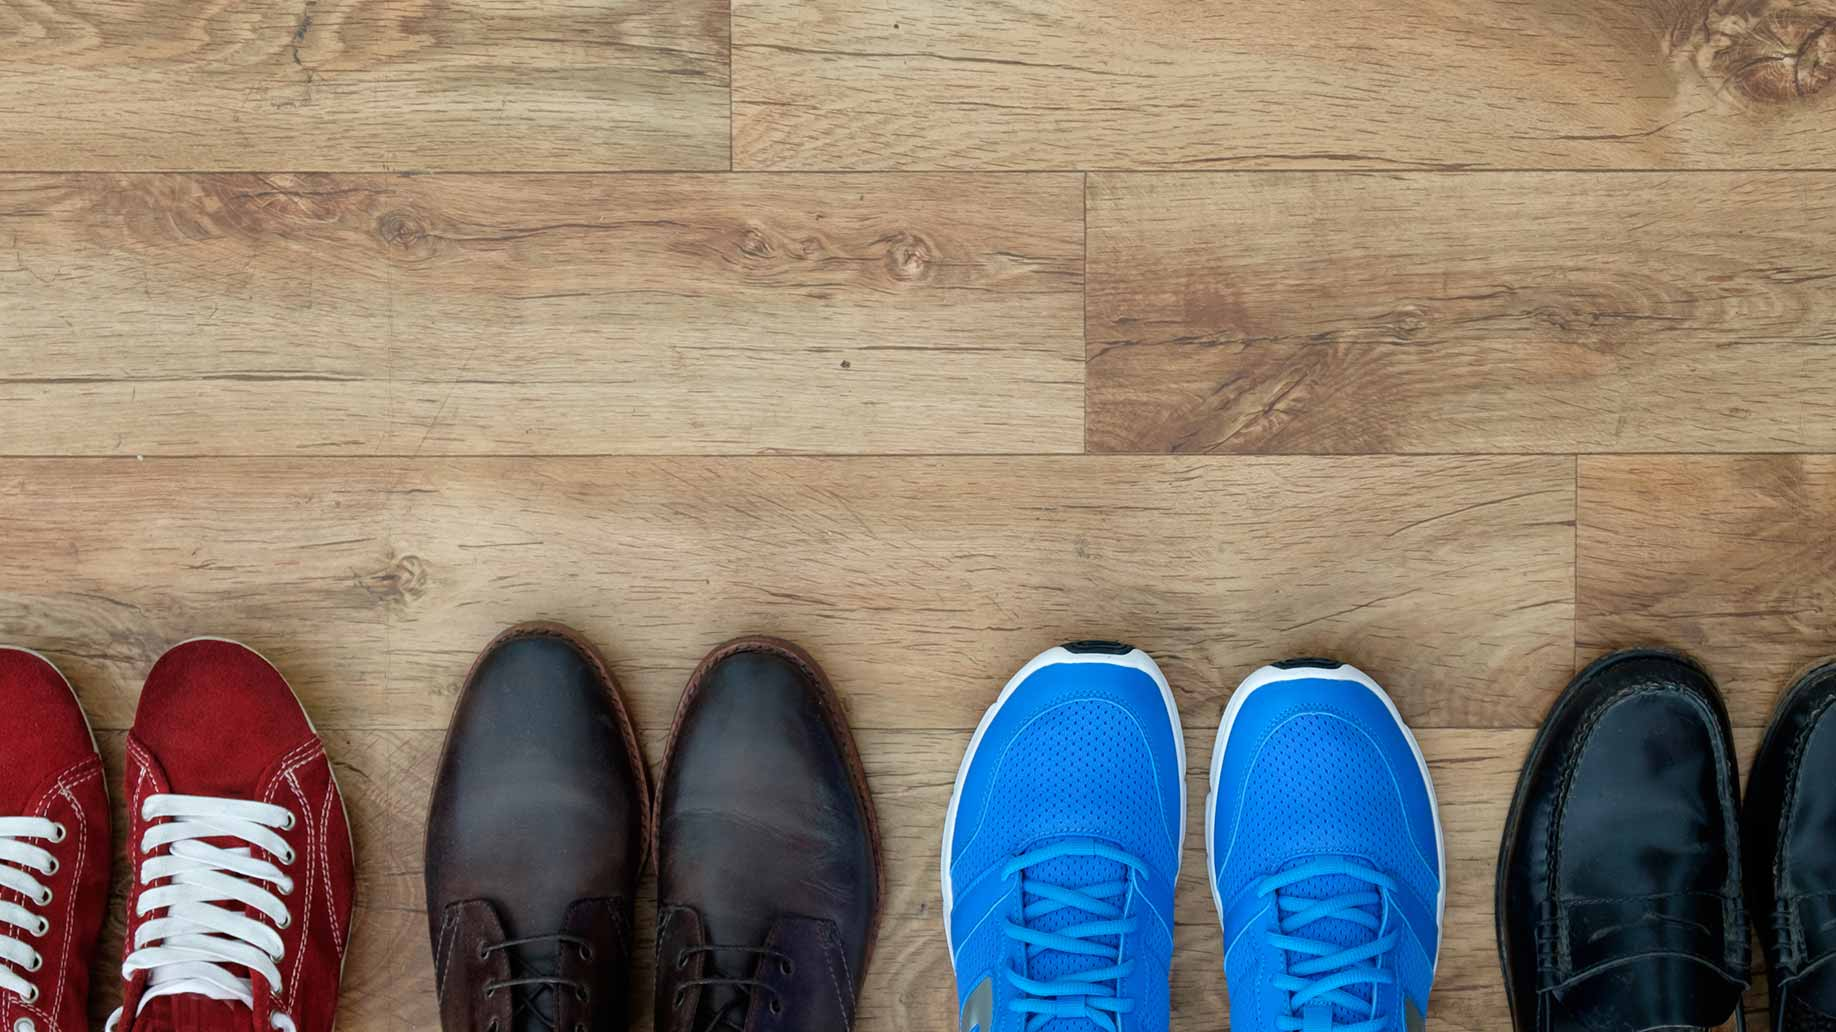 shoe collection lined up on wooden floor running shoes dress shoes